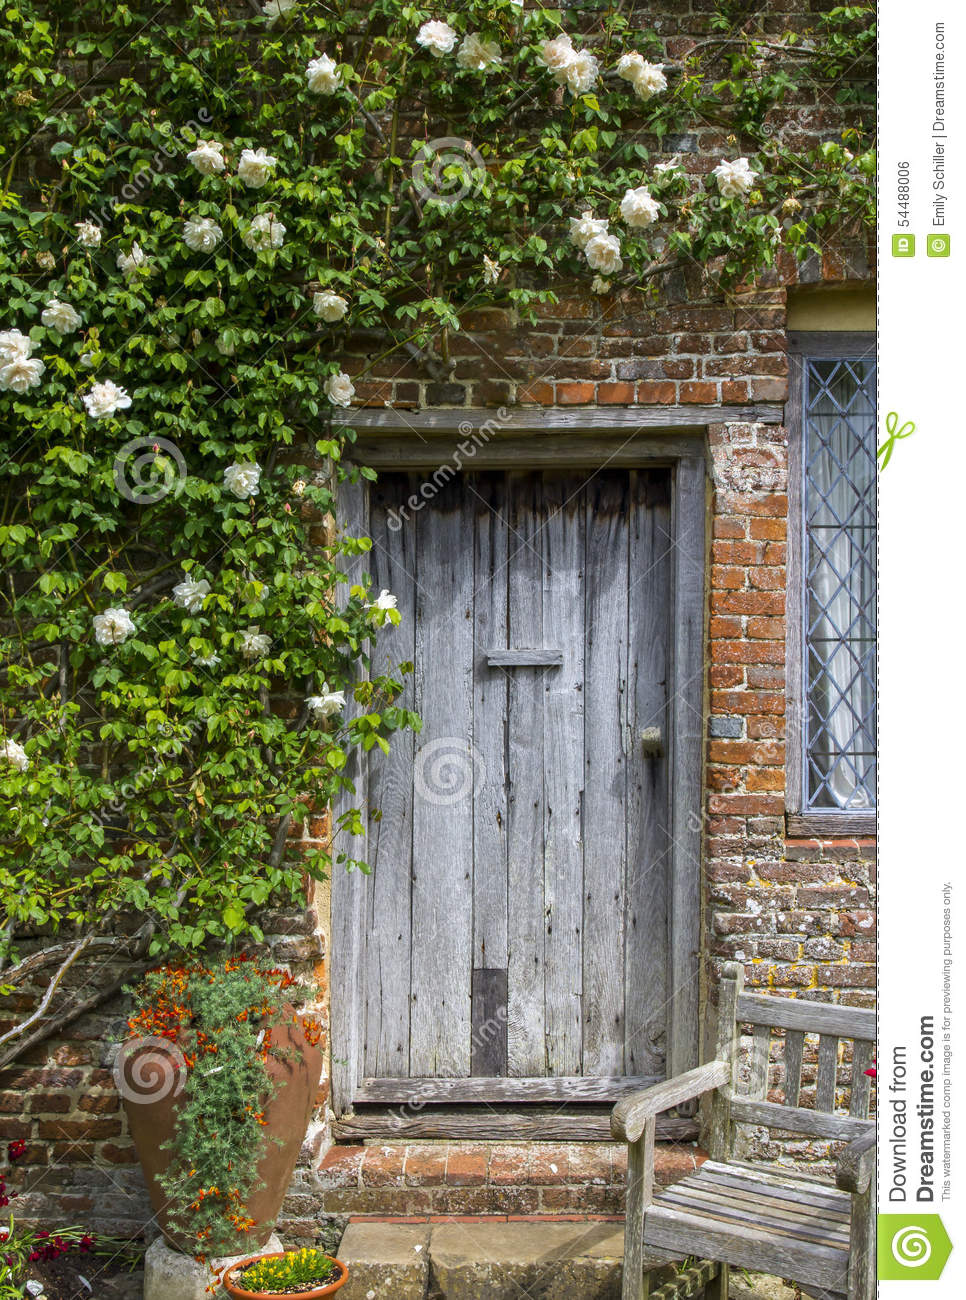 Old Wooden Door Framed By White Roses Stock Photo - Image ...